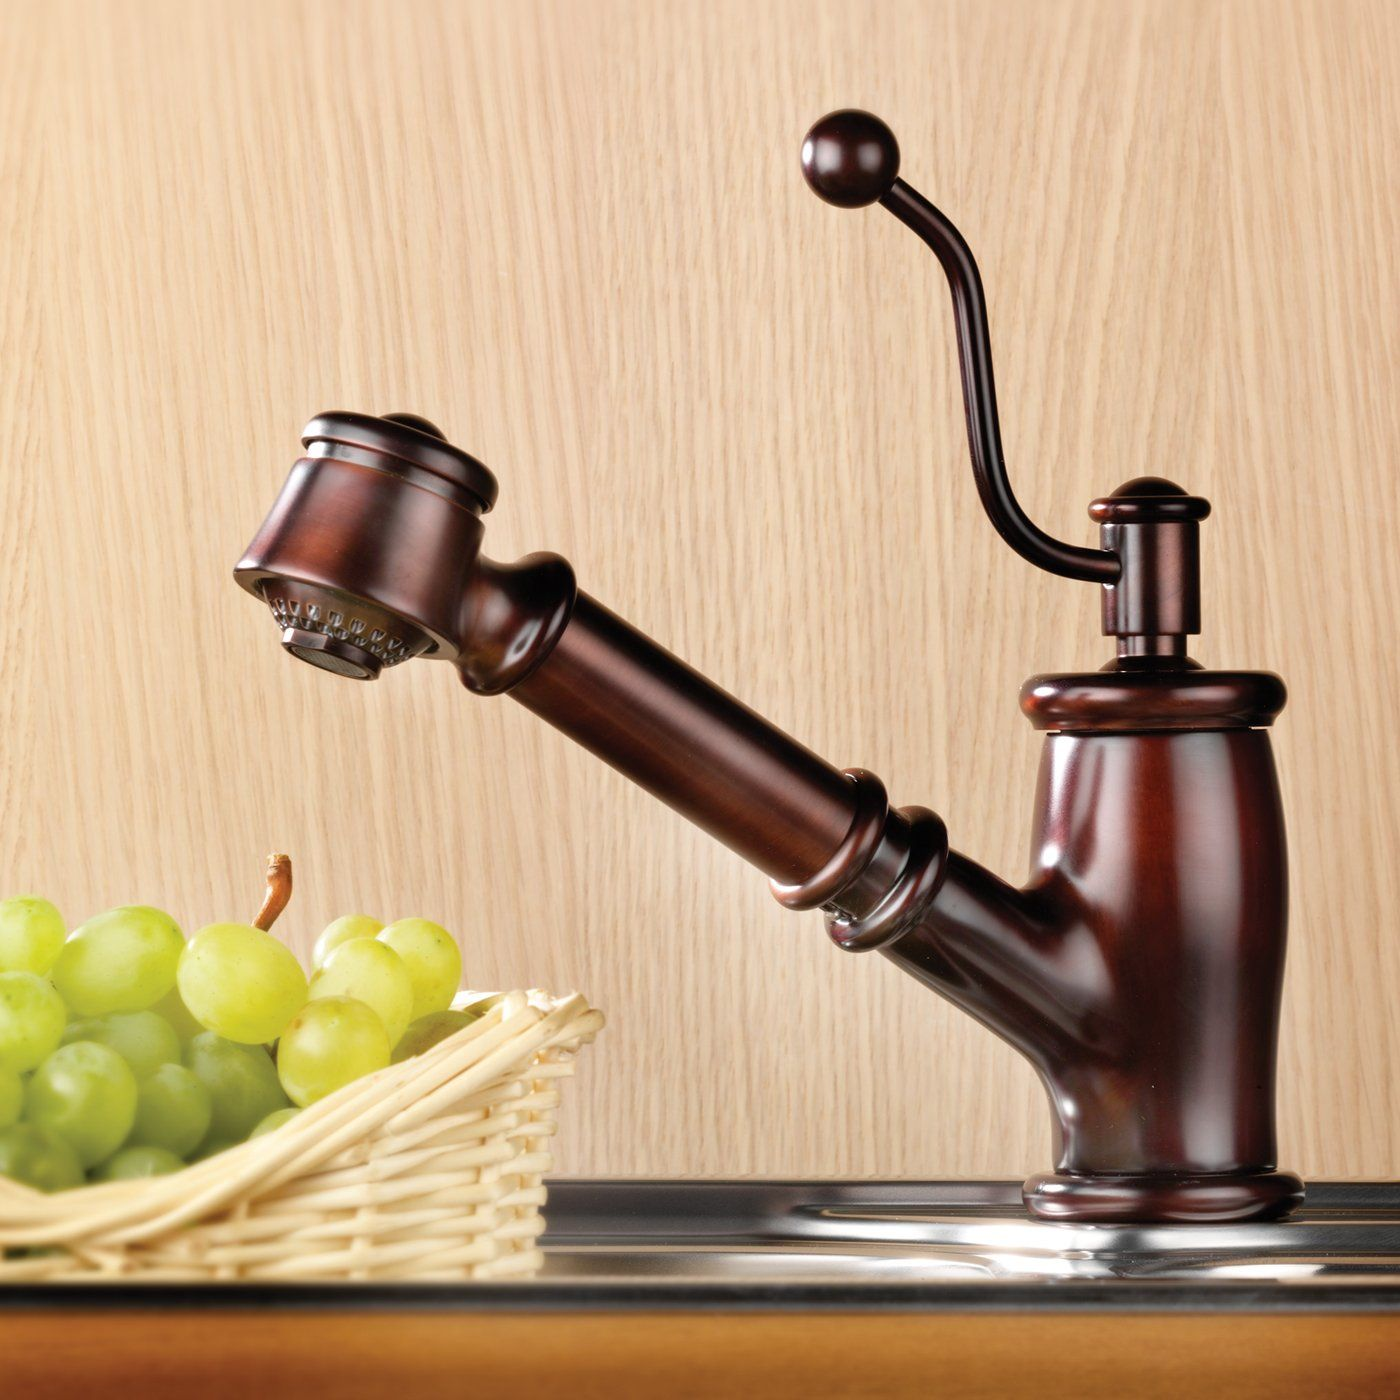 Mico Designs Ltd. 7711 Seashore Kitchen Pull Out Spray Faucet | For ...